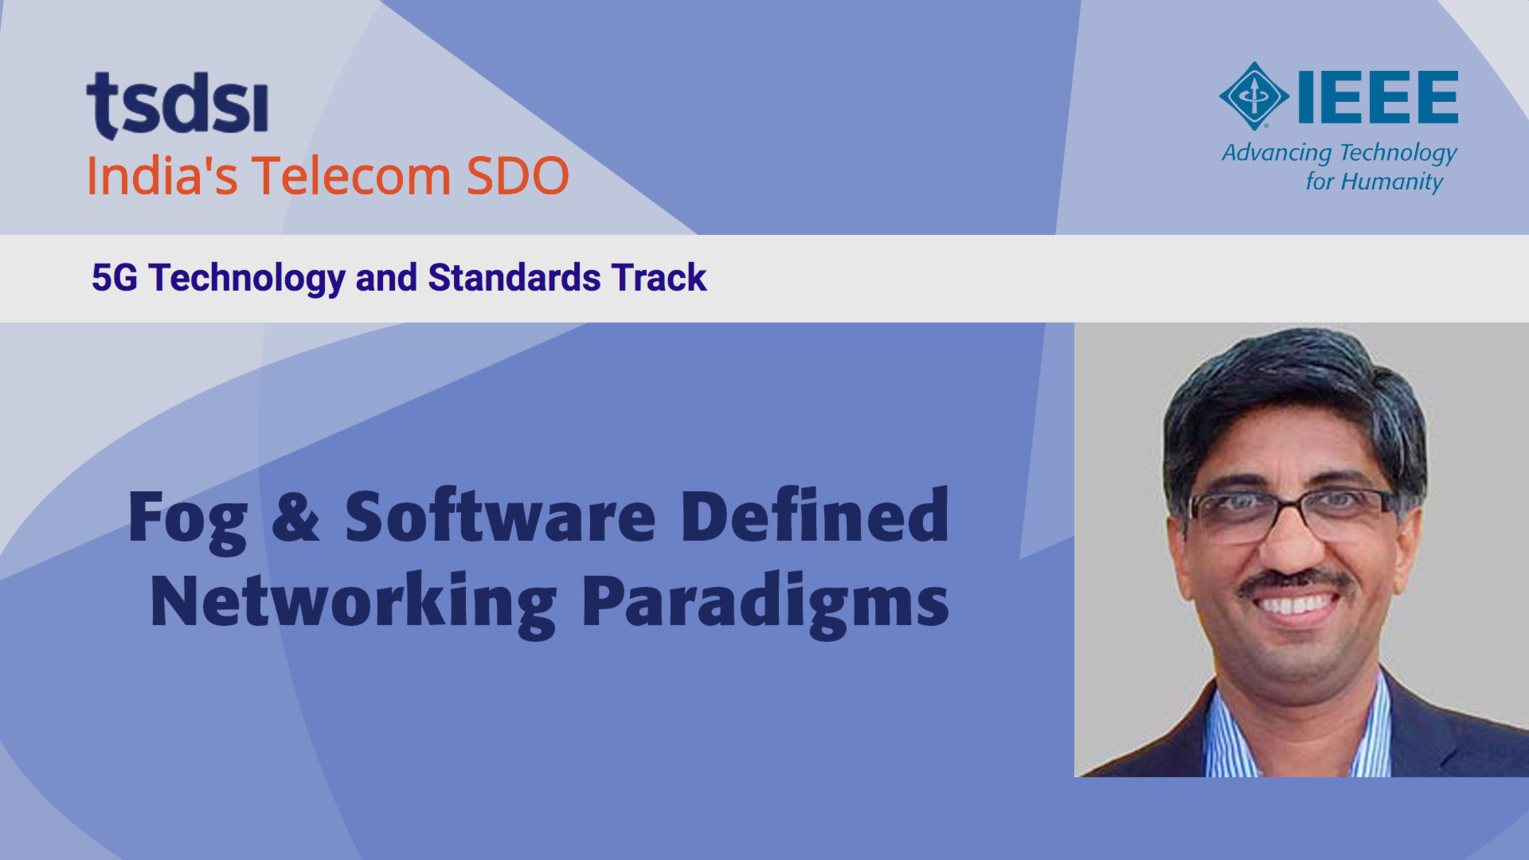 Keynote 3: Fog and Software Defined Networking Paradigms - Abhay Karandikar - India Mobile Congress, 2018